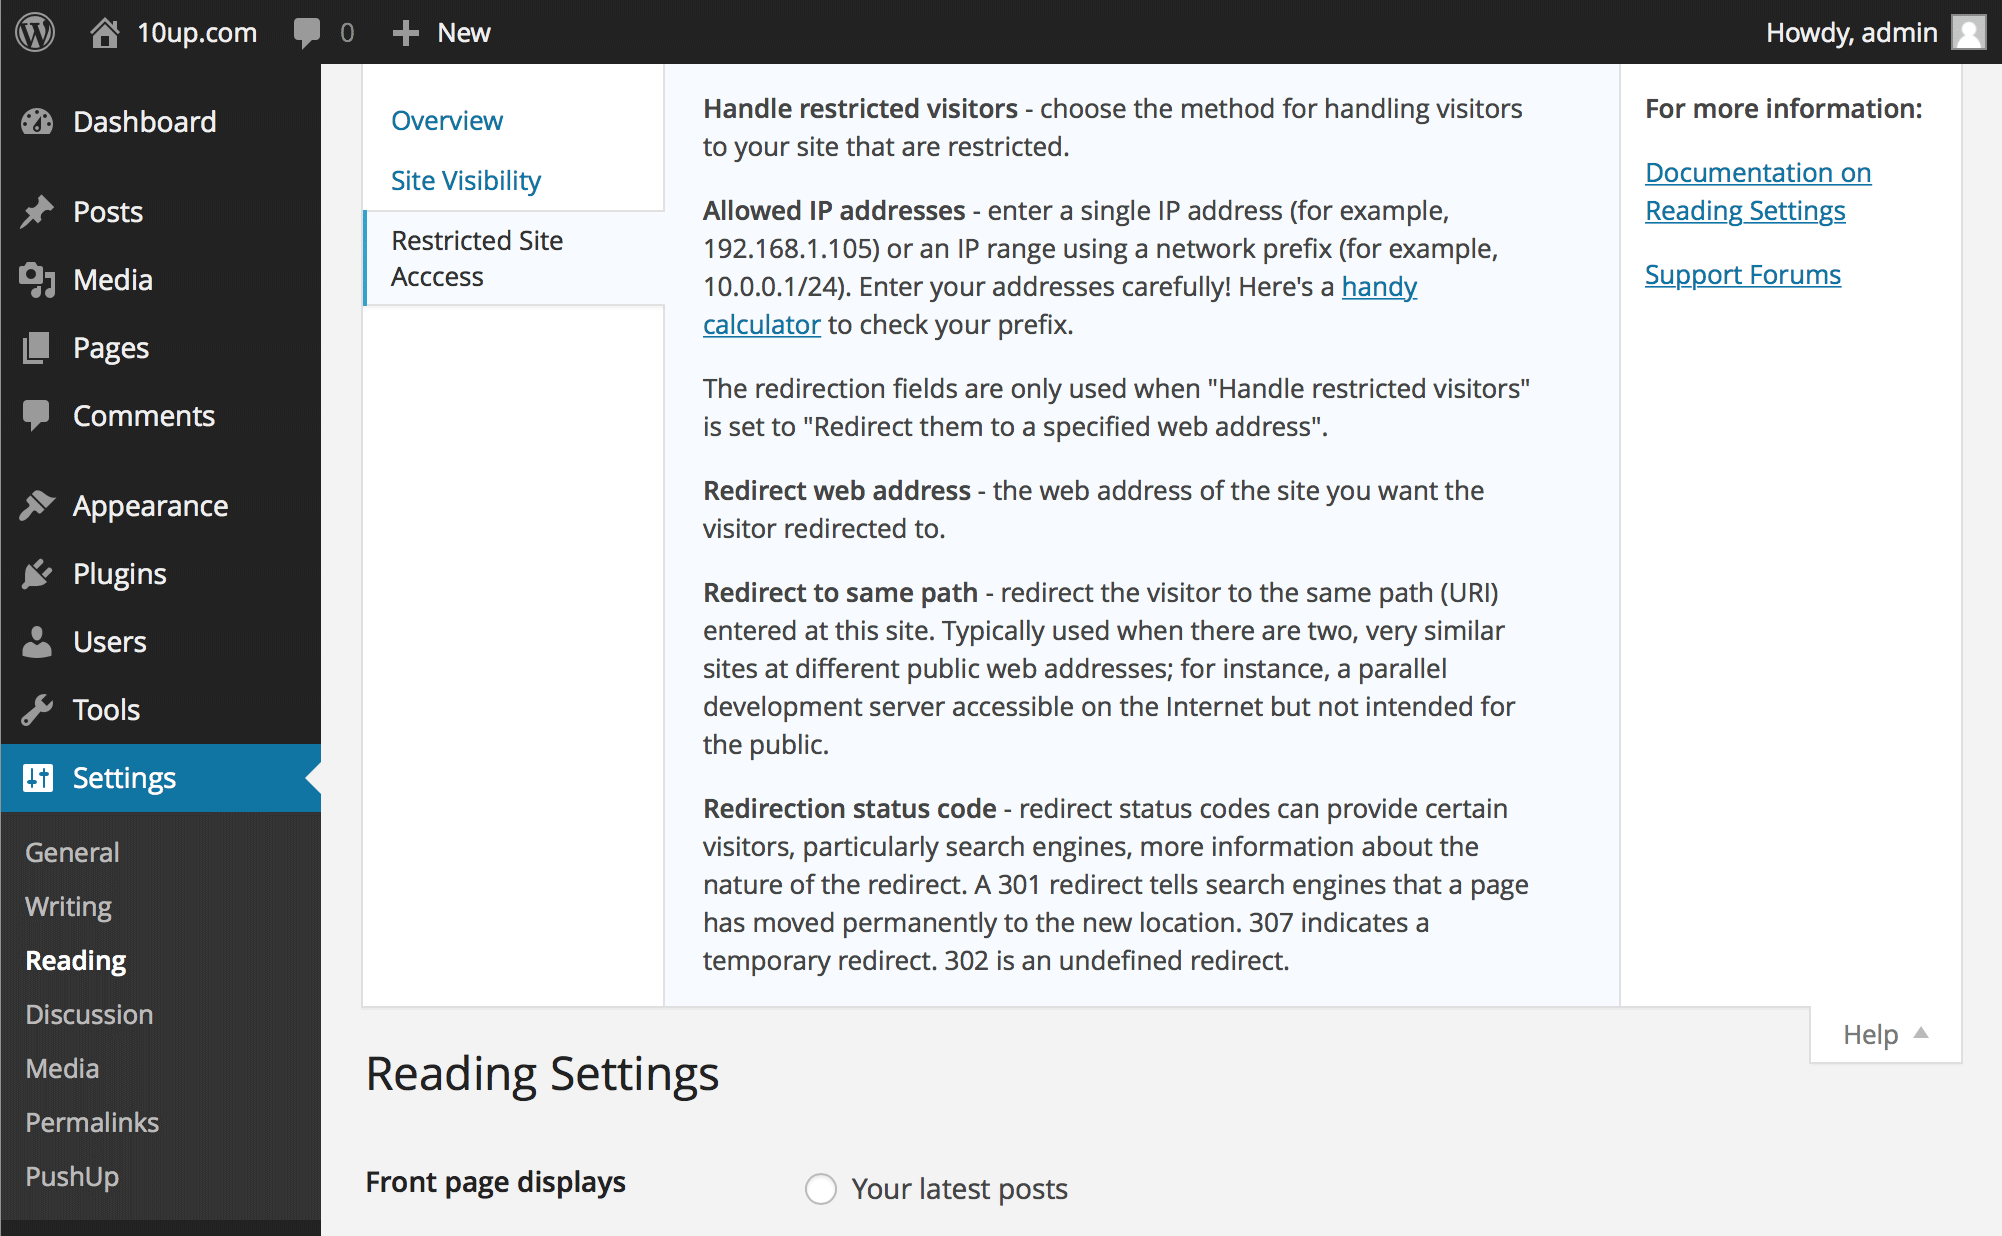 Plenty of inline help! Looks and behaves like native WordPress help.